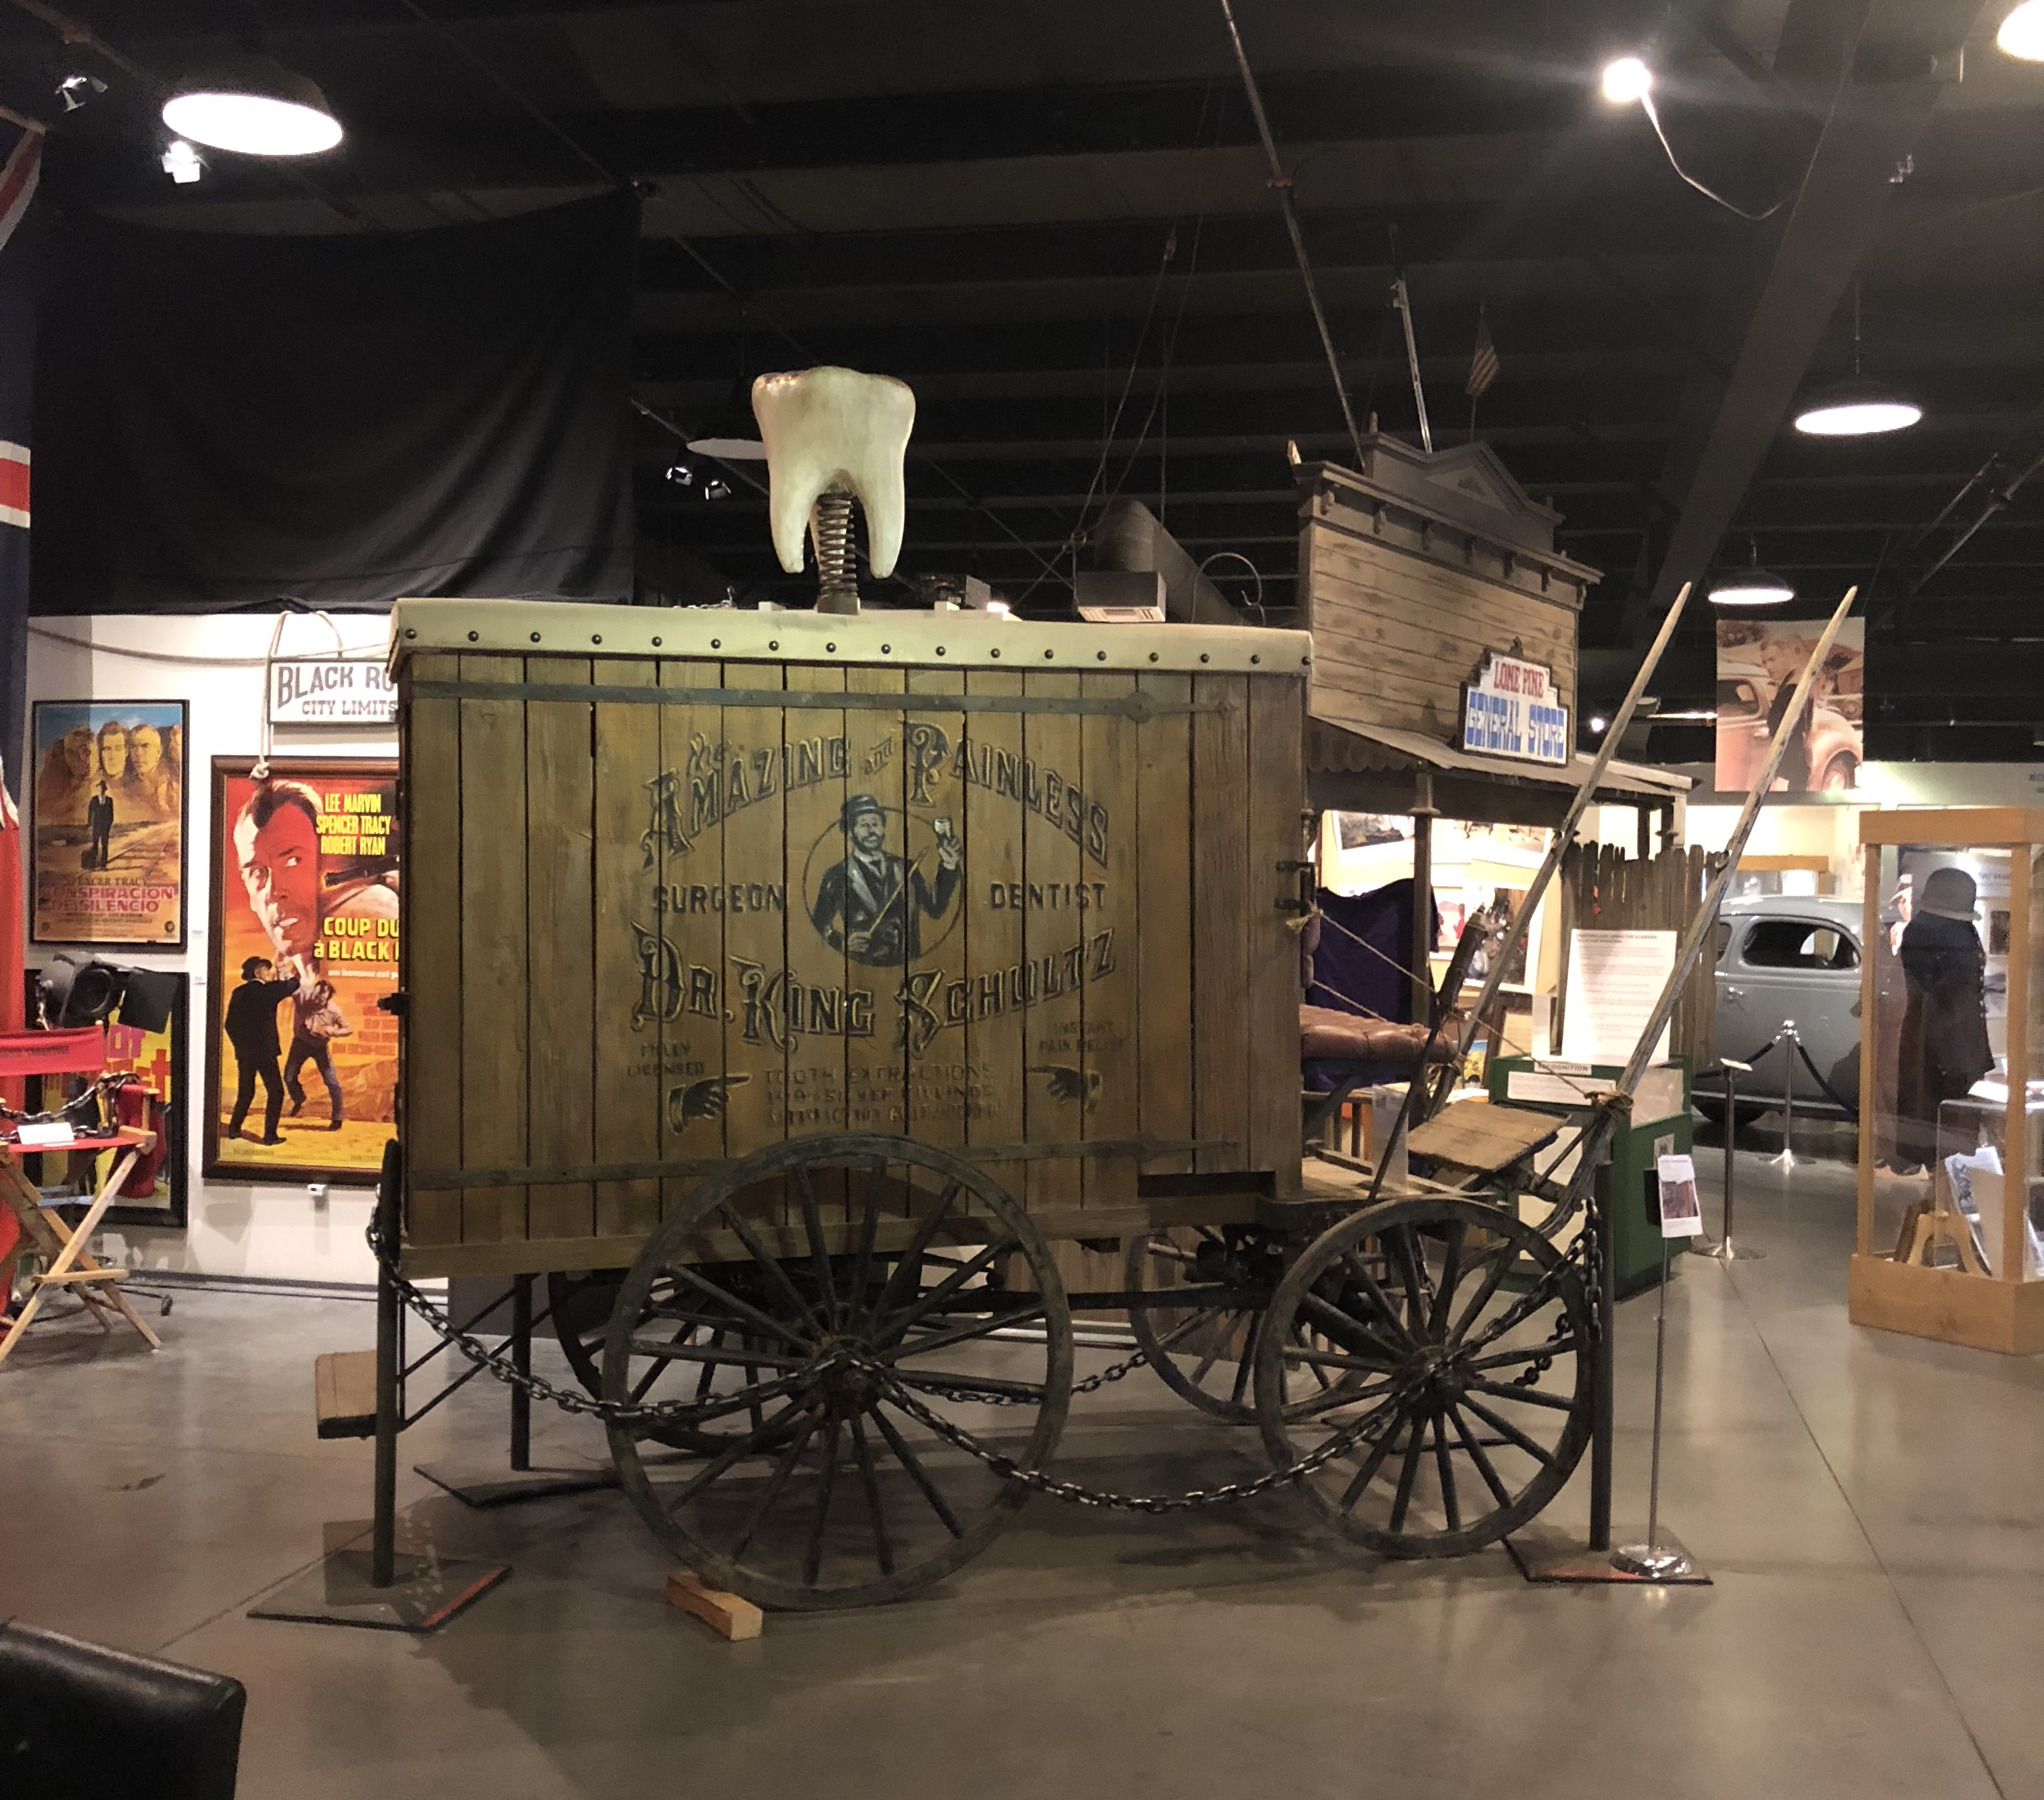 The Dentist Cart from Django Unchained